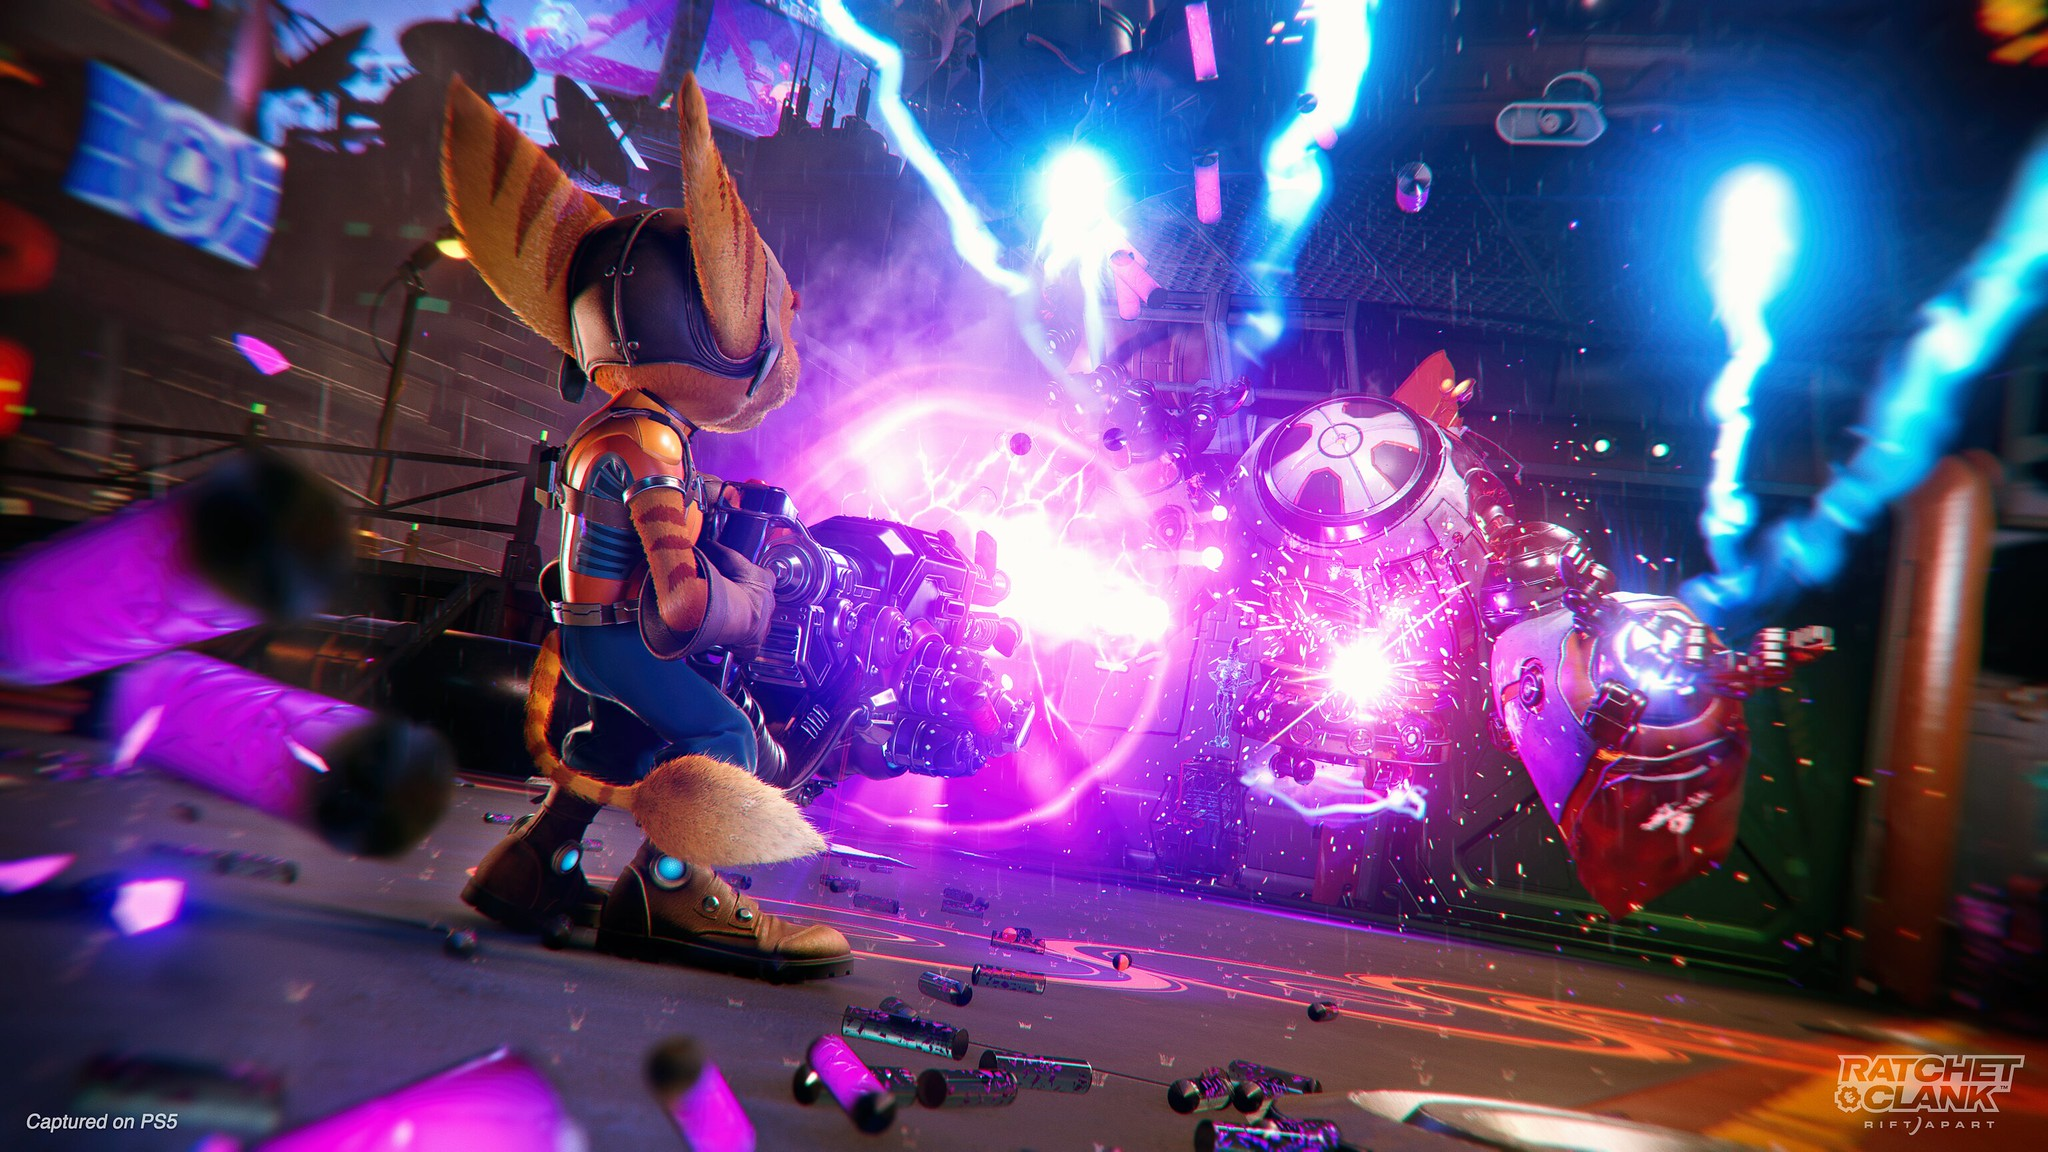 'Ratchet & Clank: Rift Apart' gameplay reveals what the PS5 can do – Engadget